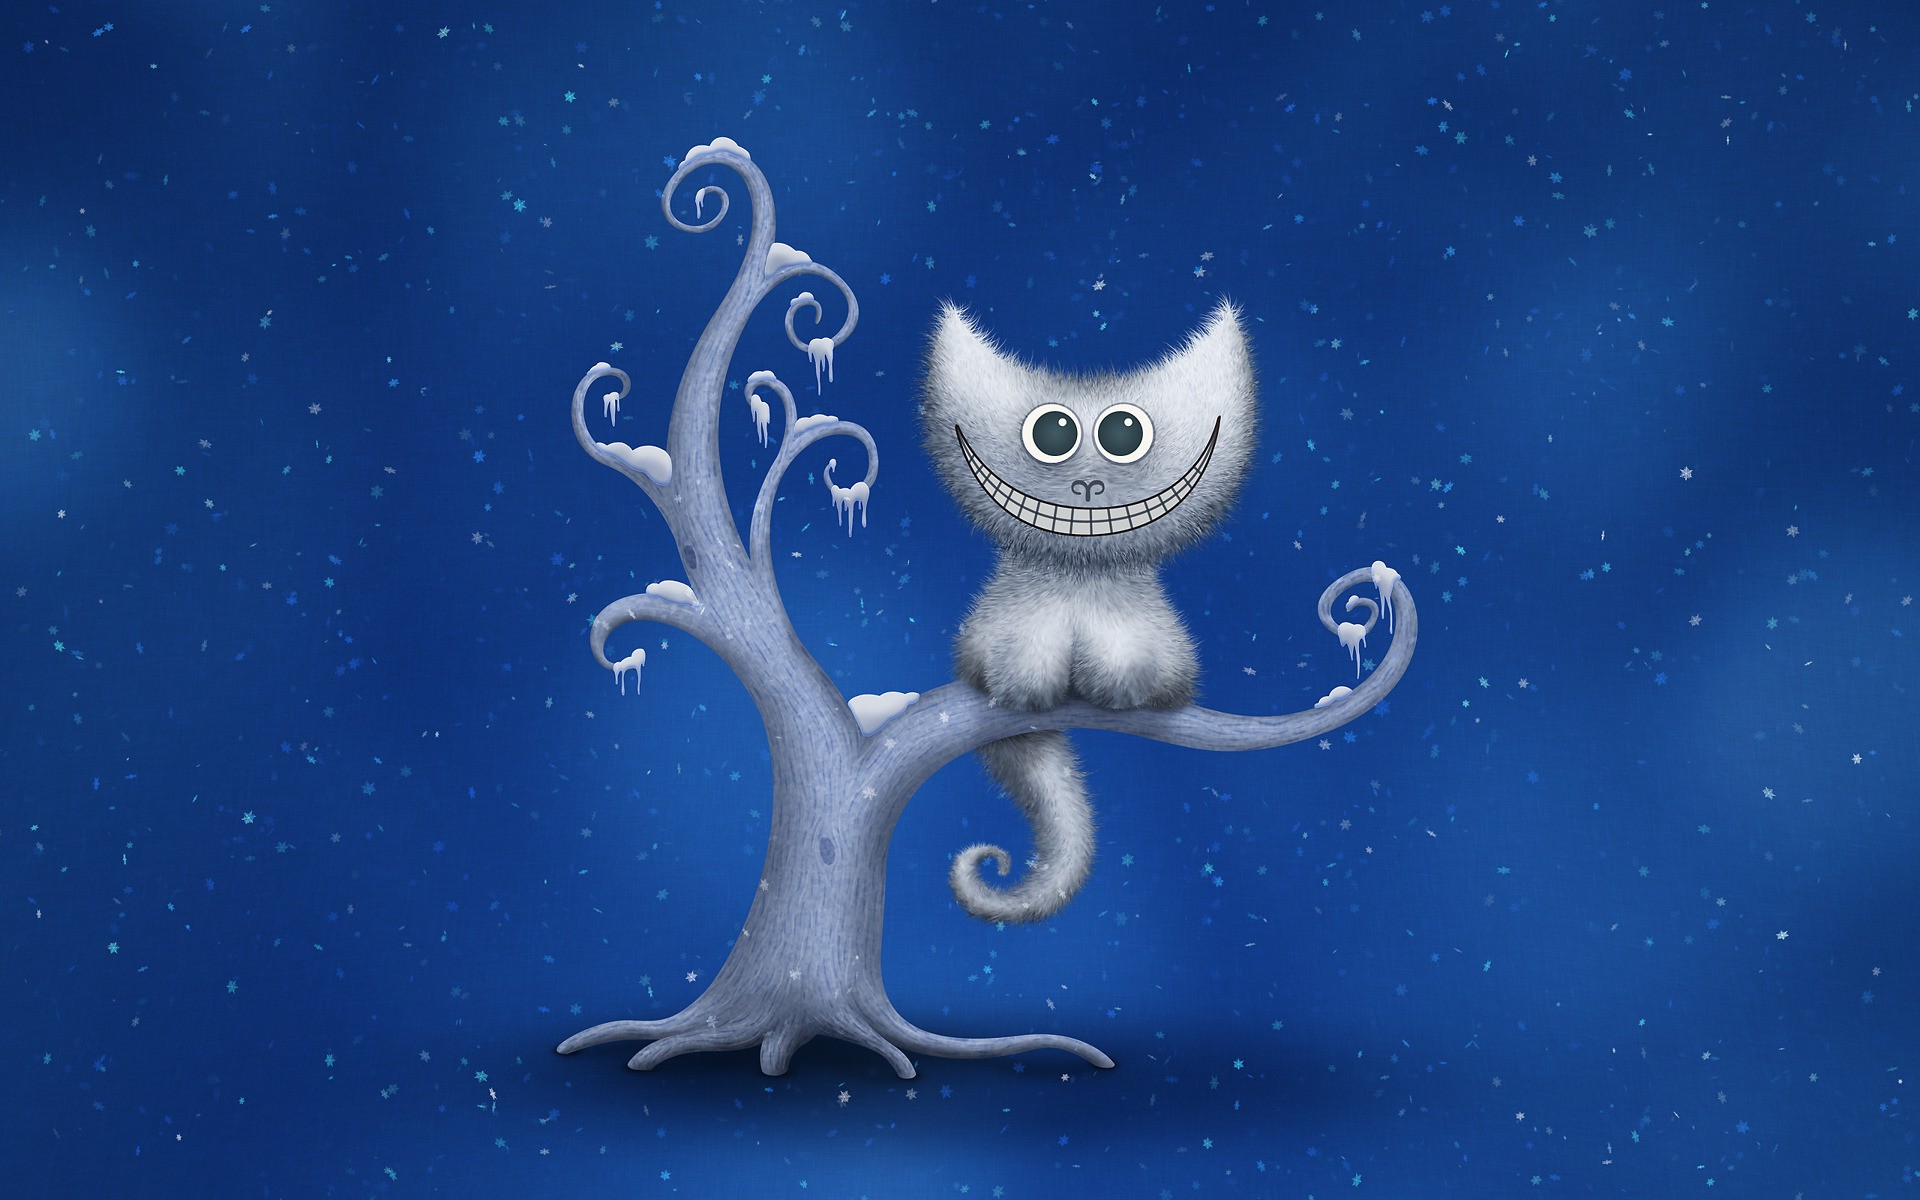 Cute Cartoon Wallpapers For Mobile Hd Digital Art Minimalism Cheshire Cat Snow Trees Blue